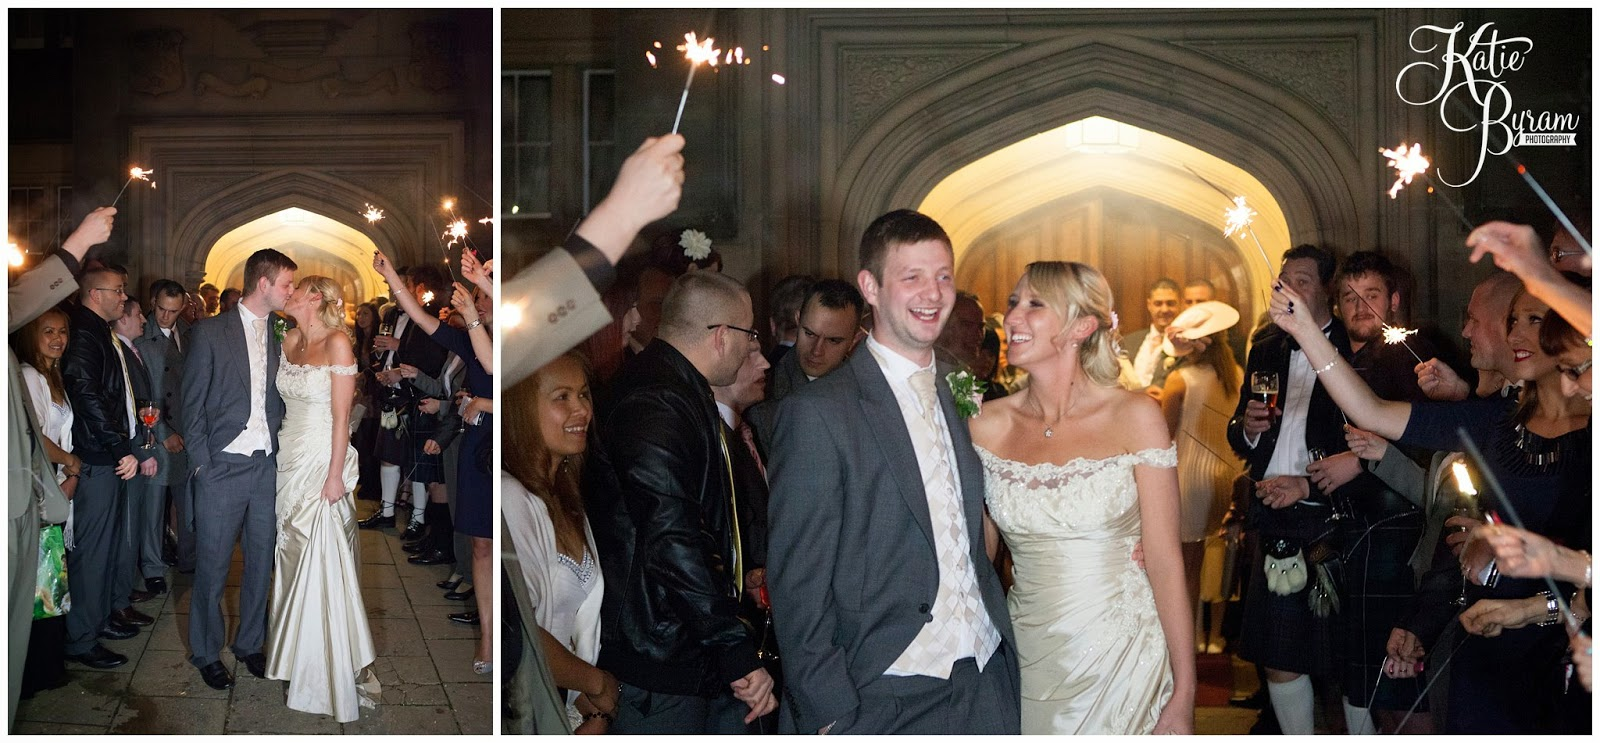 wedding sparklers, sparkler send off, matfen hall wedding, matfen wedding, northumberland wedding, katie byram photography, vintage wedding, quirky wedding photography, north east wedding, north east wedding venue, great hall matfen, event diva, by wendy, just perfect,